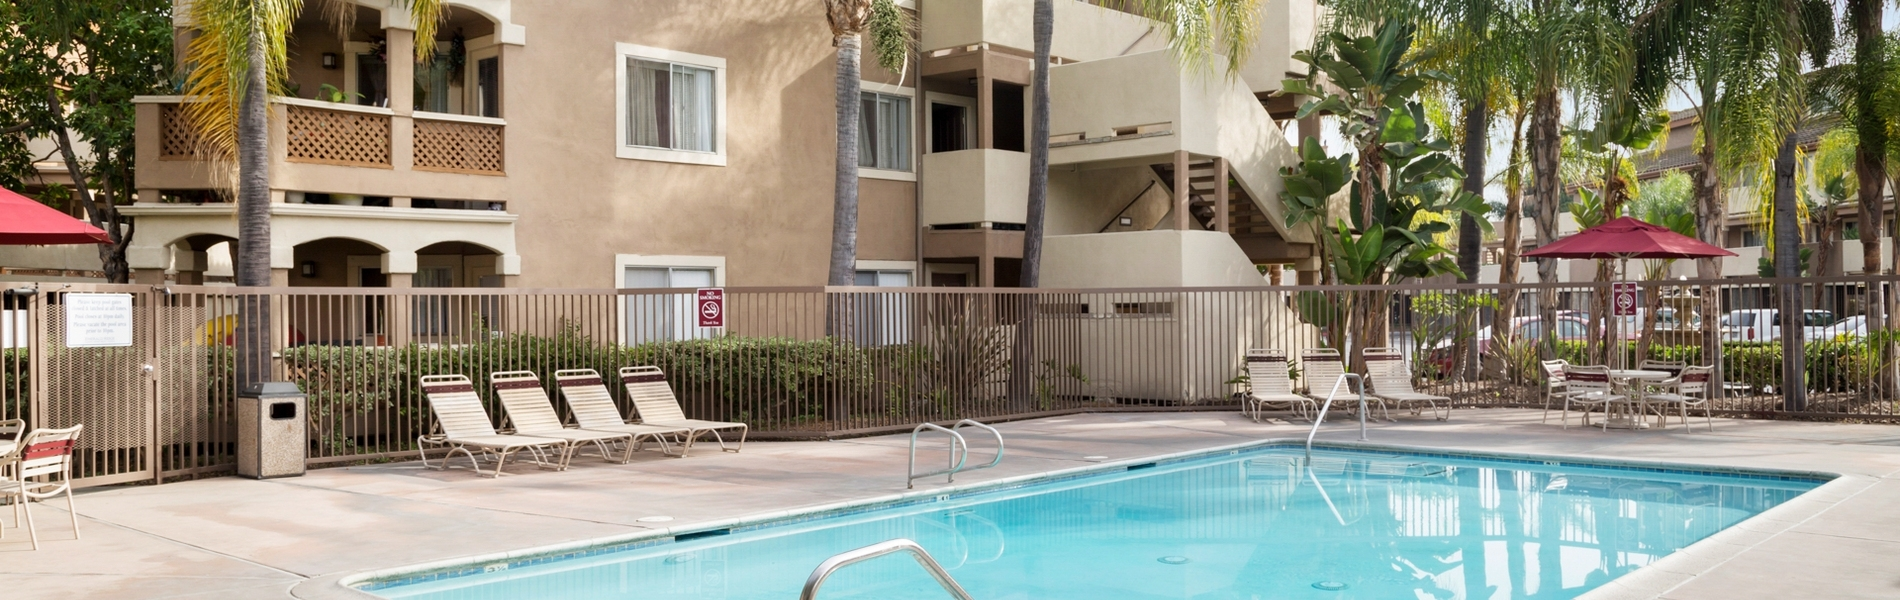 Garden Grove Apartments Sarasota Reviews Garden Ftempo